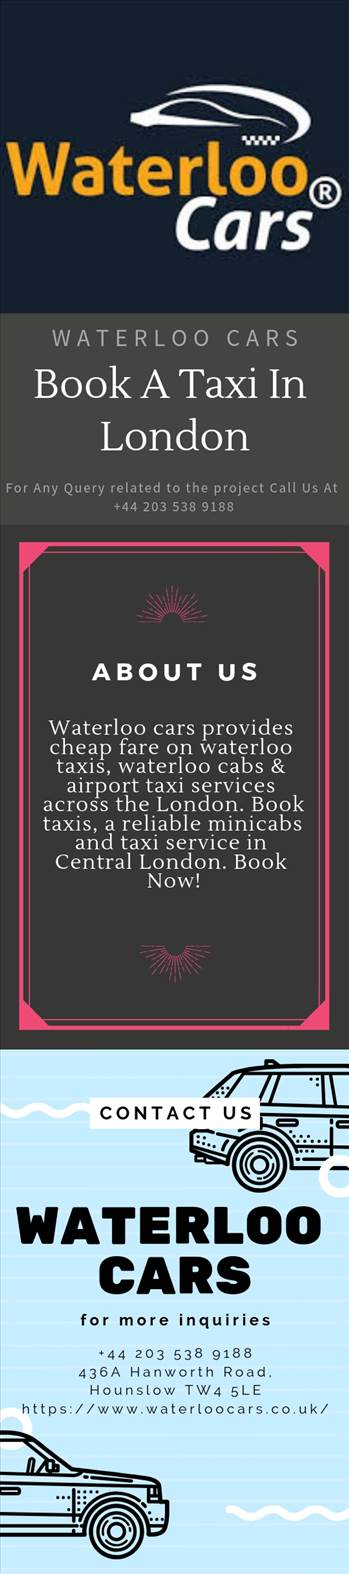 Waterloo cars provide cheap fare on waterloo taxis, waterloo cabs & airport taxi services across London. Book taxis, reliable minicabs and taxi service in Central London.  Book Now today!